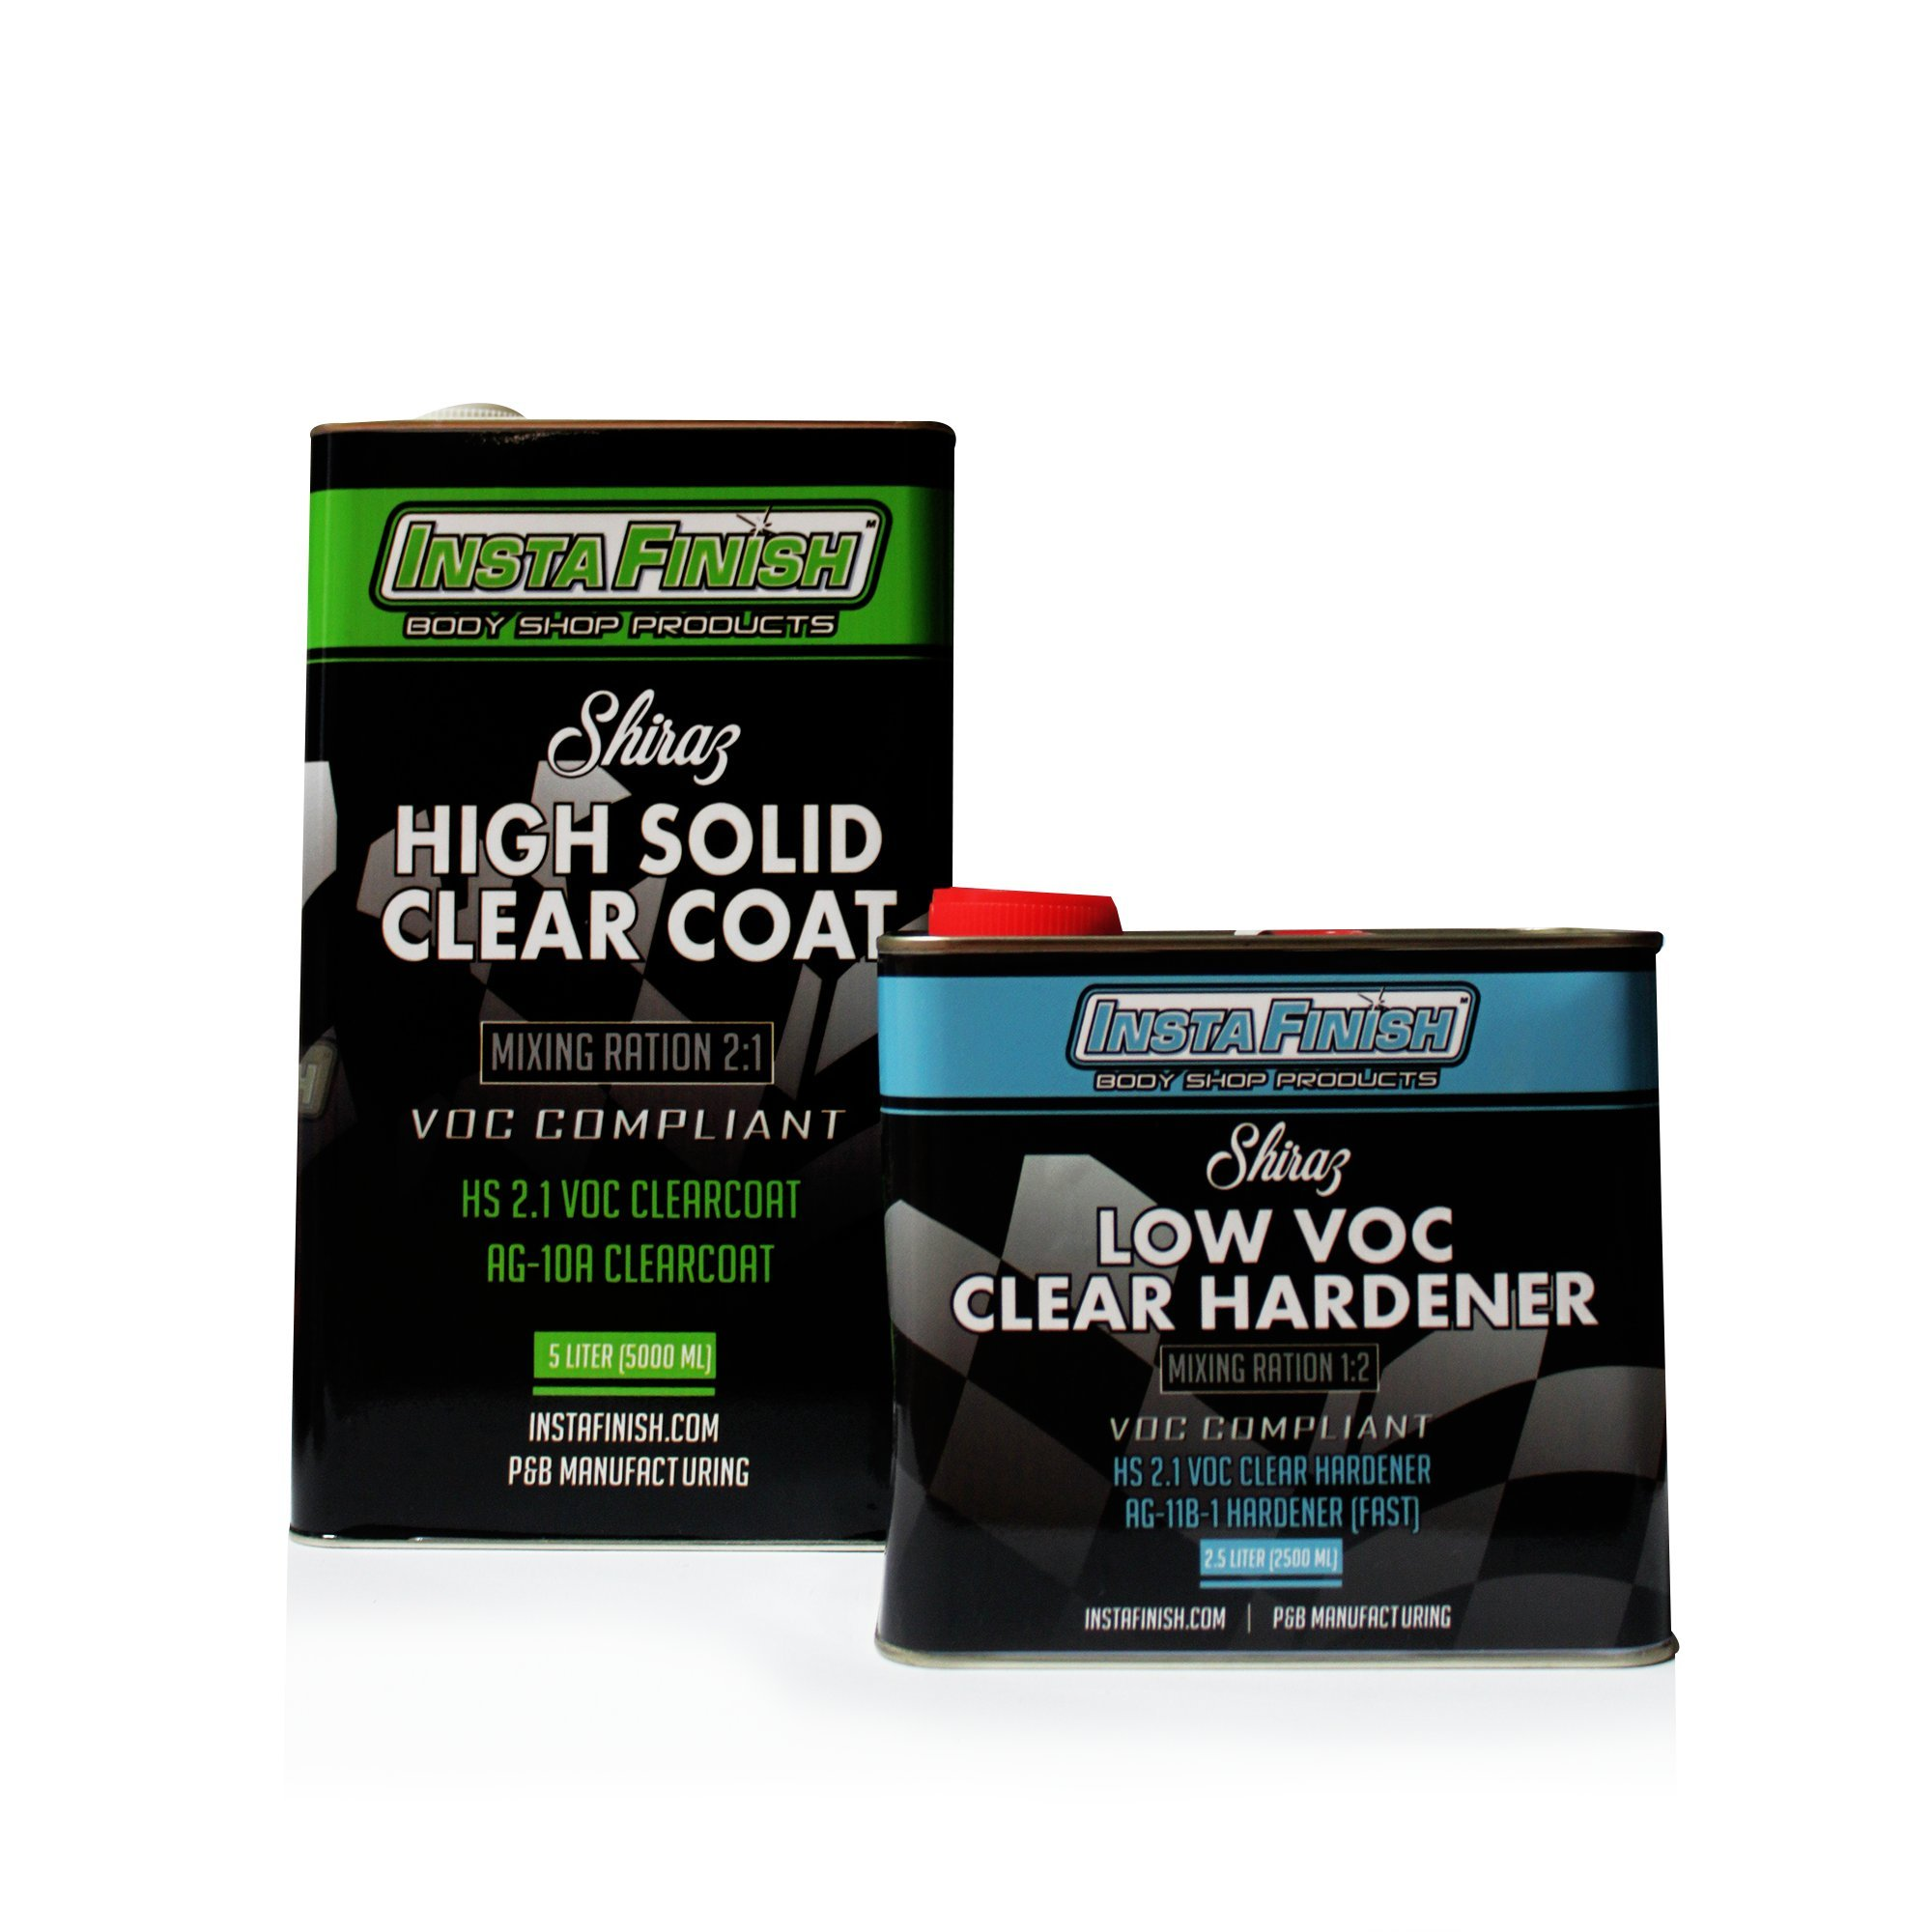 Insta Finish Shiraz 2.1 VOC HS Clear Coat w/2:1 Mixing ration & FAST hardener included AG-10A (7.5 LITERS TOTAL) + FREE PANEL SHOP 1200 POLISH (Fast Drying Hardener)